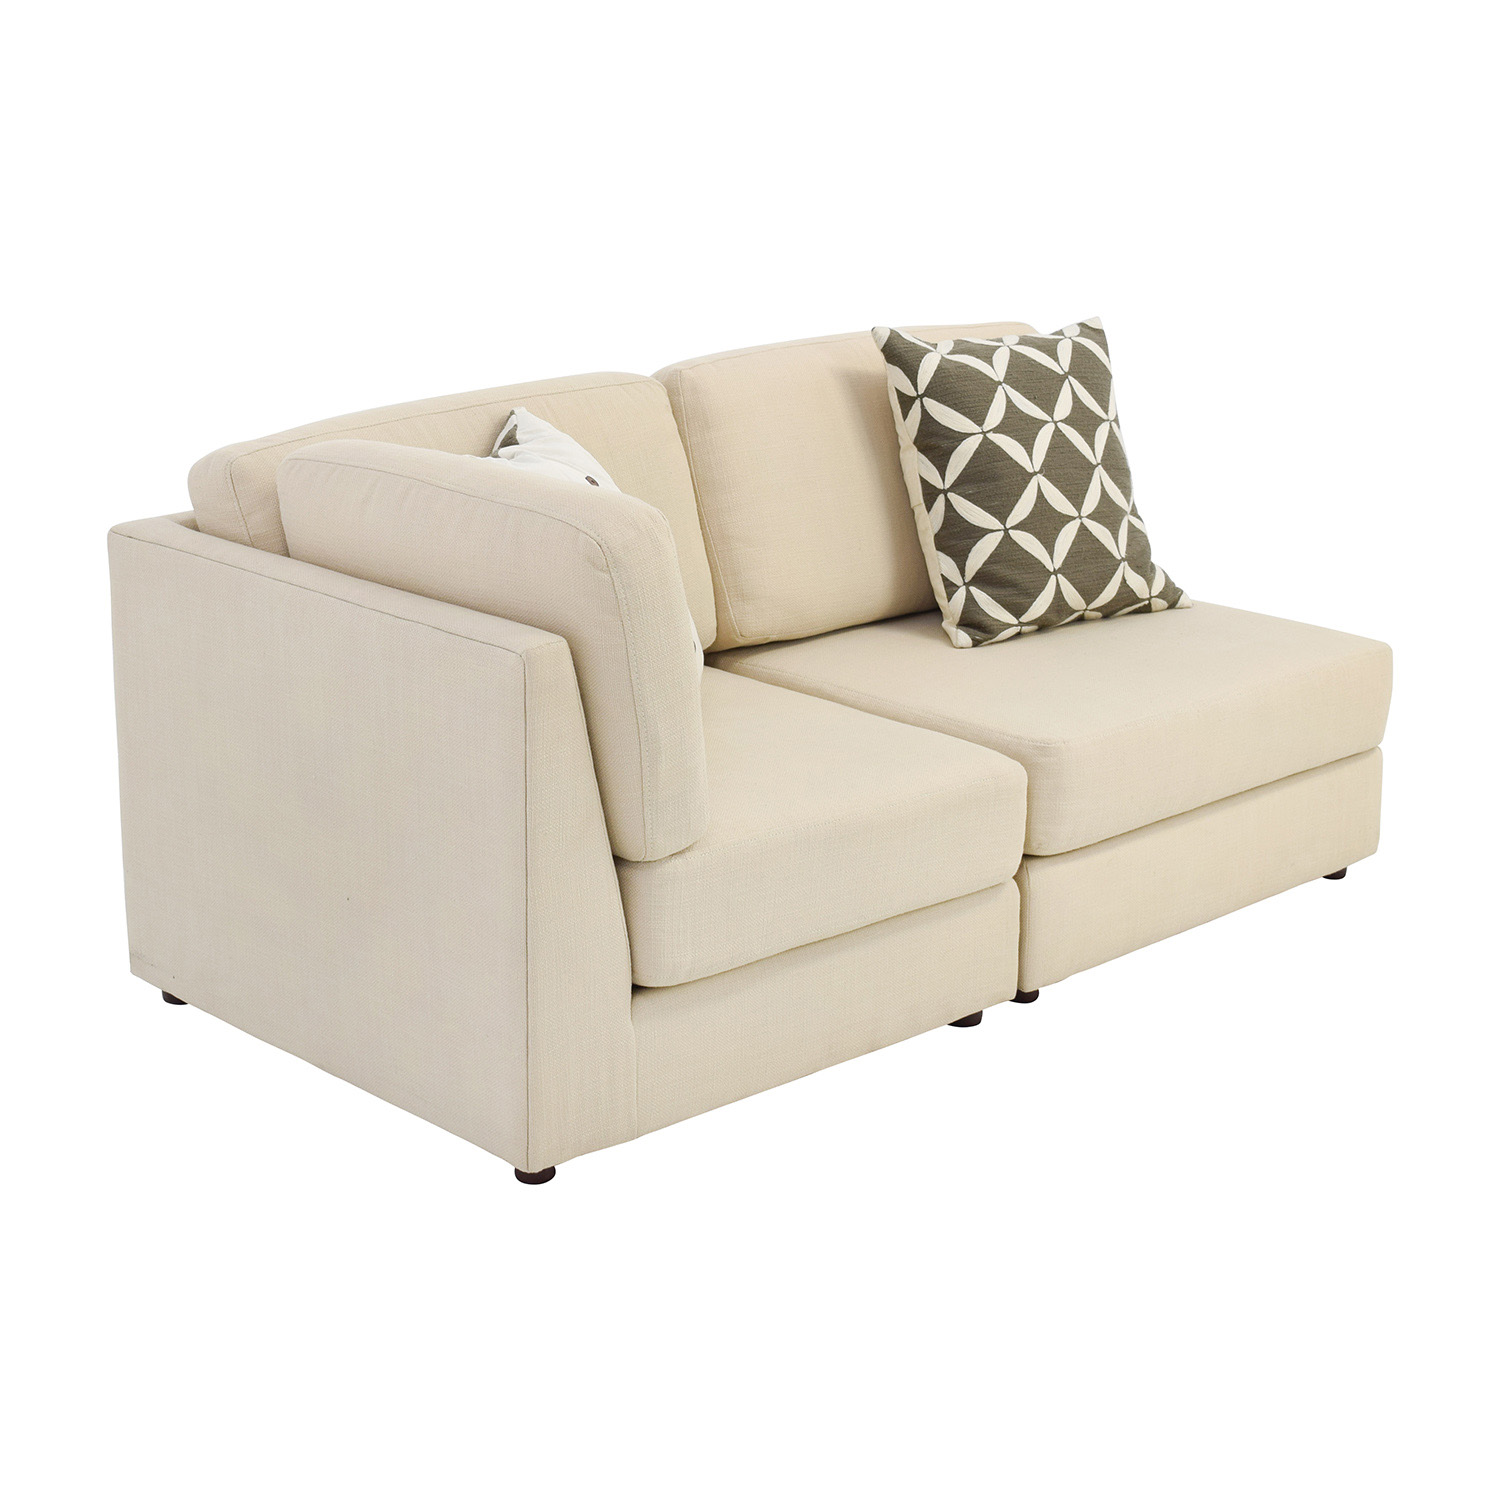 76 off west elm west elm cream chaise sofa or two for Chaise and sofa